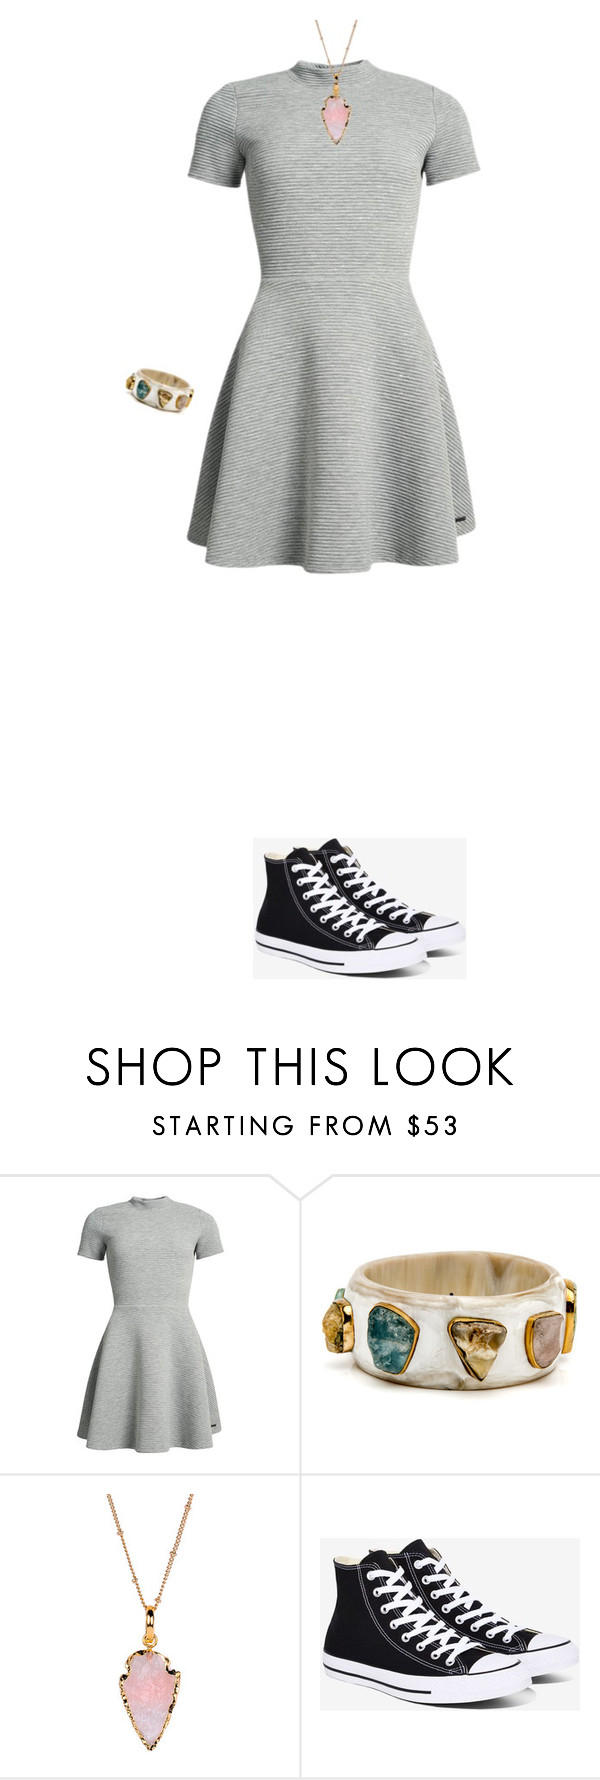 """Untitled #187"" by mockingjaygirl1221 ❤ liked on Polyvore featuring Superdry and Converse"